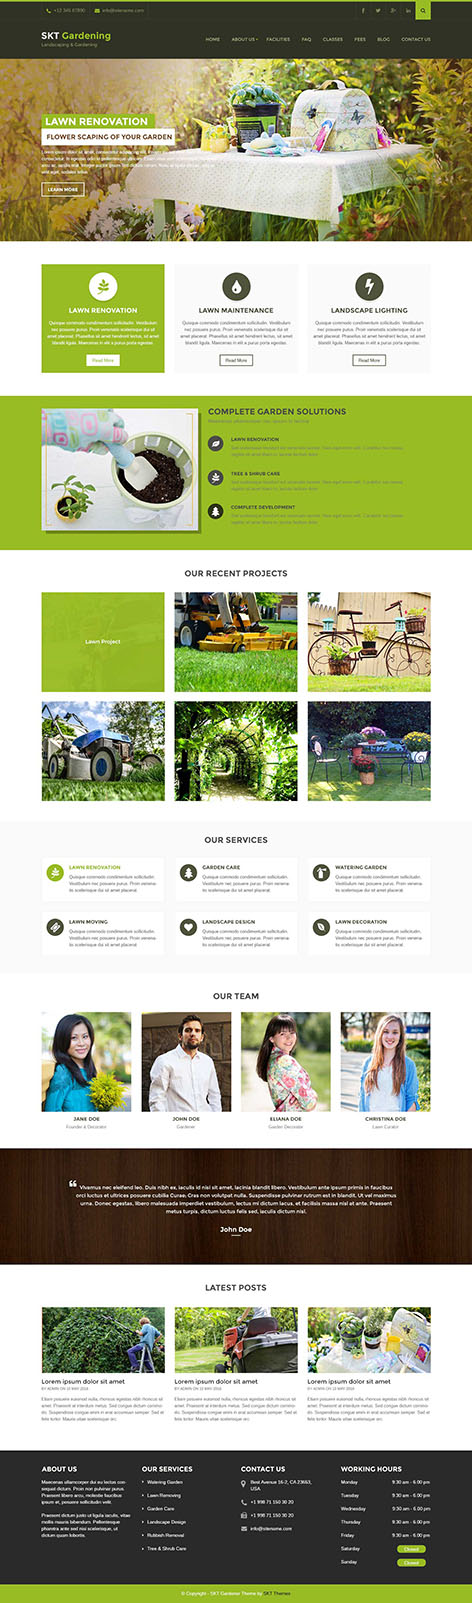 gardening landscaping wordpress theme 1 - Gardening